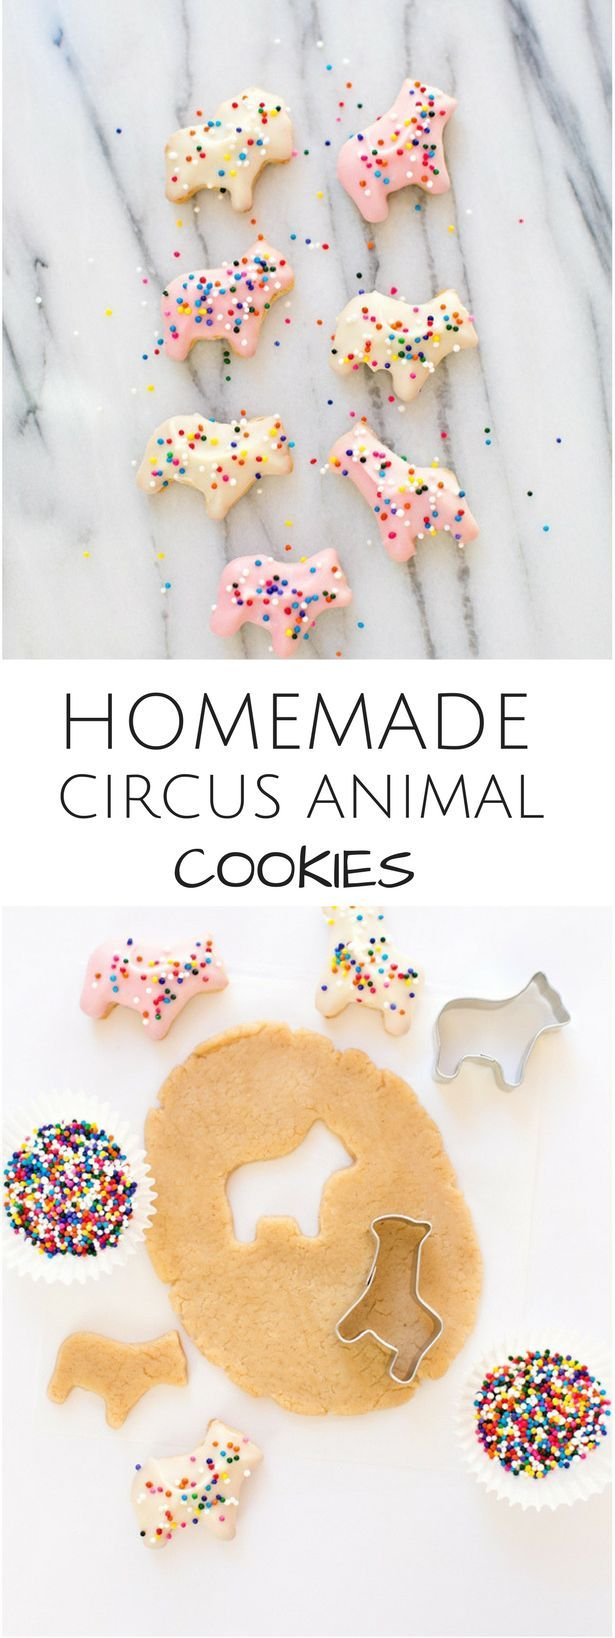 Homemade Circus Animal Cookies. Easy cookie recipe for kids and tastes so much better than store-bought!